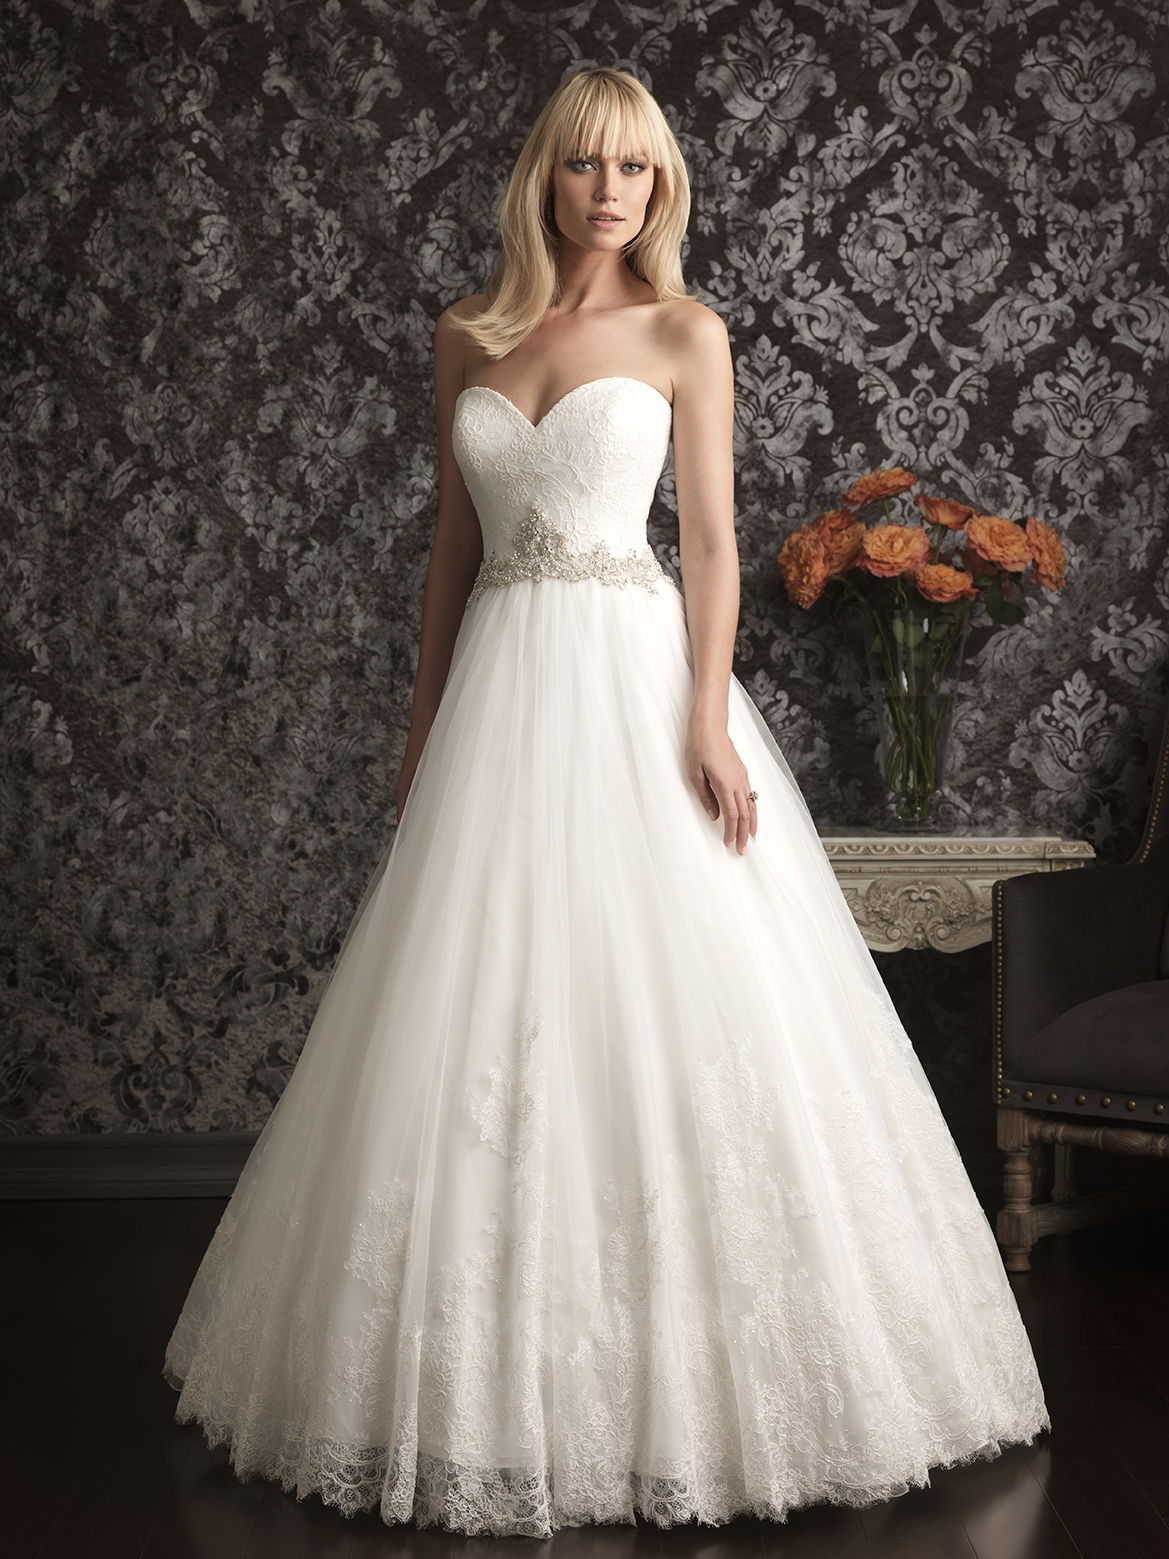 Allure-bridals-wedding-dress-bridal-gown-allure-collection-2013-9014f.original